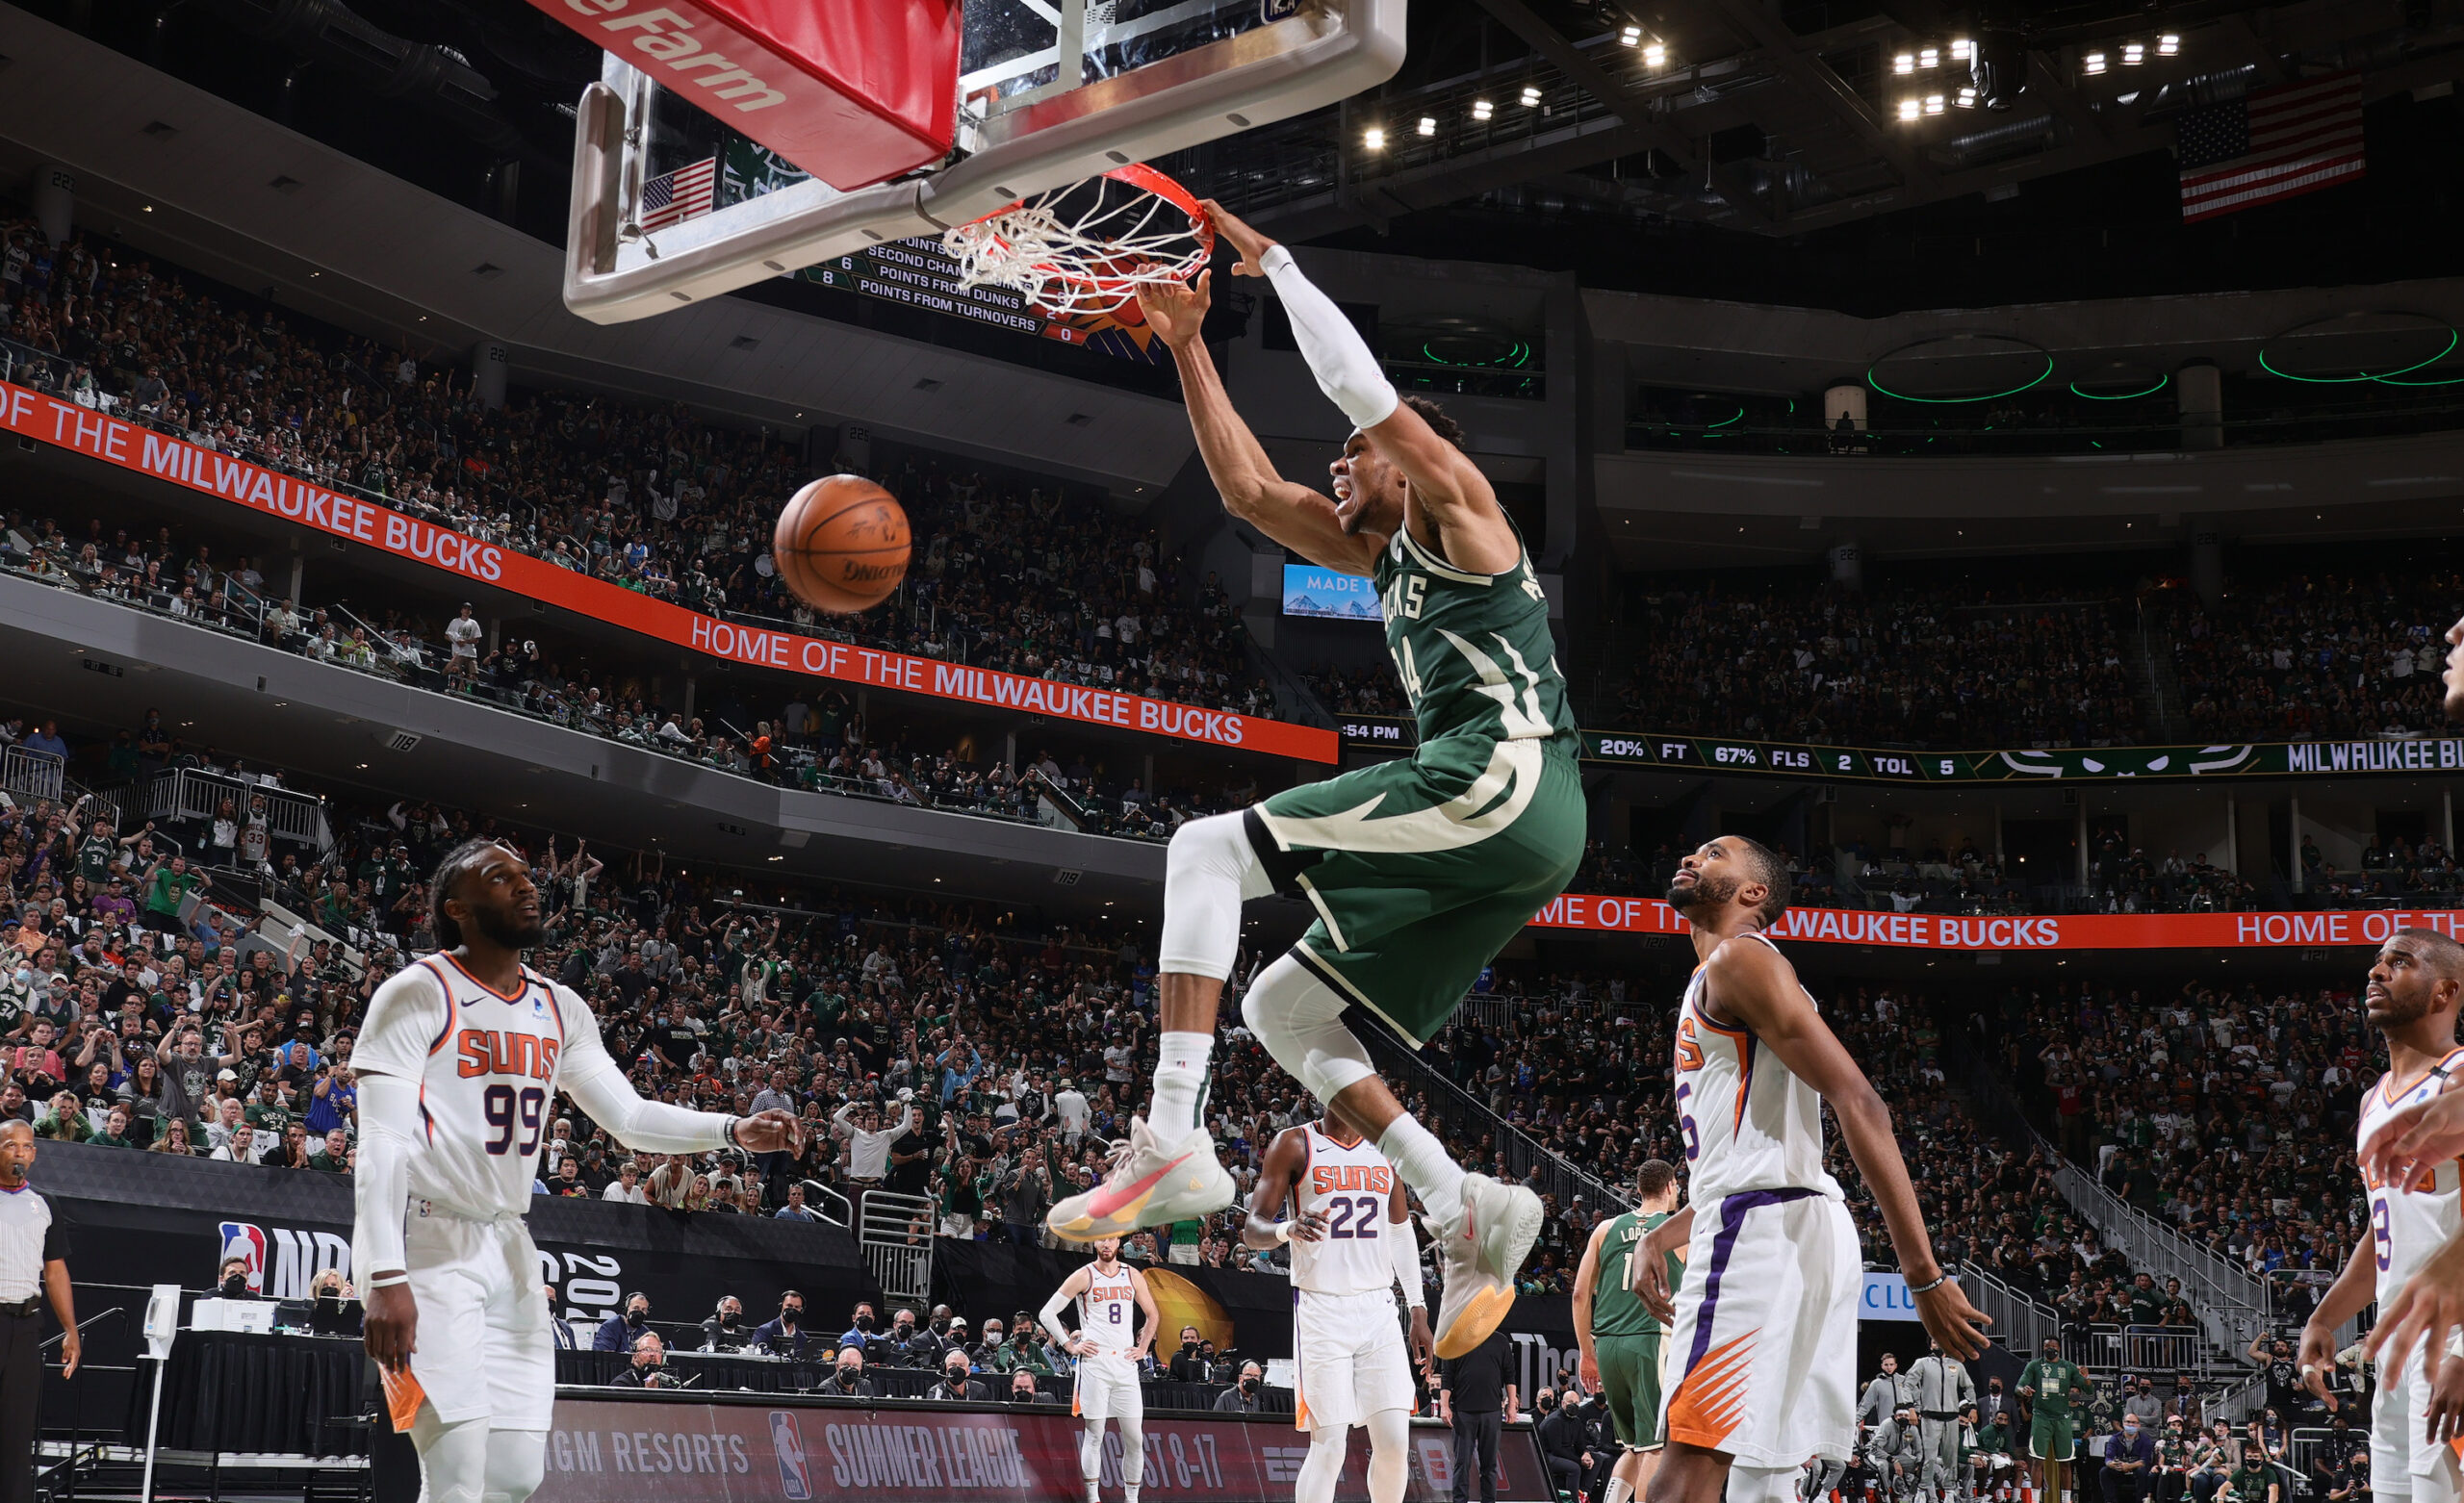 Finals MVP Ladder: Giannis Antetokounmpo powers his way to the top after Game 3